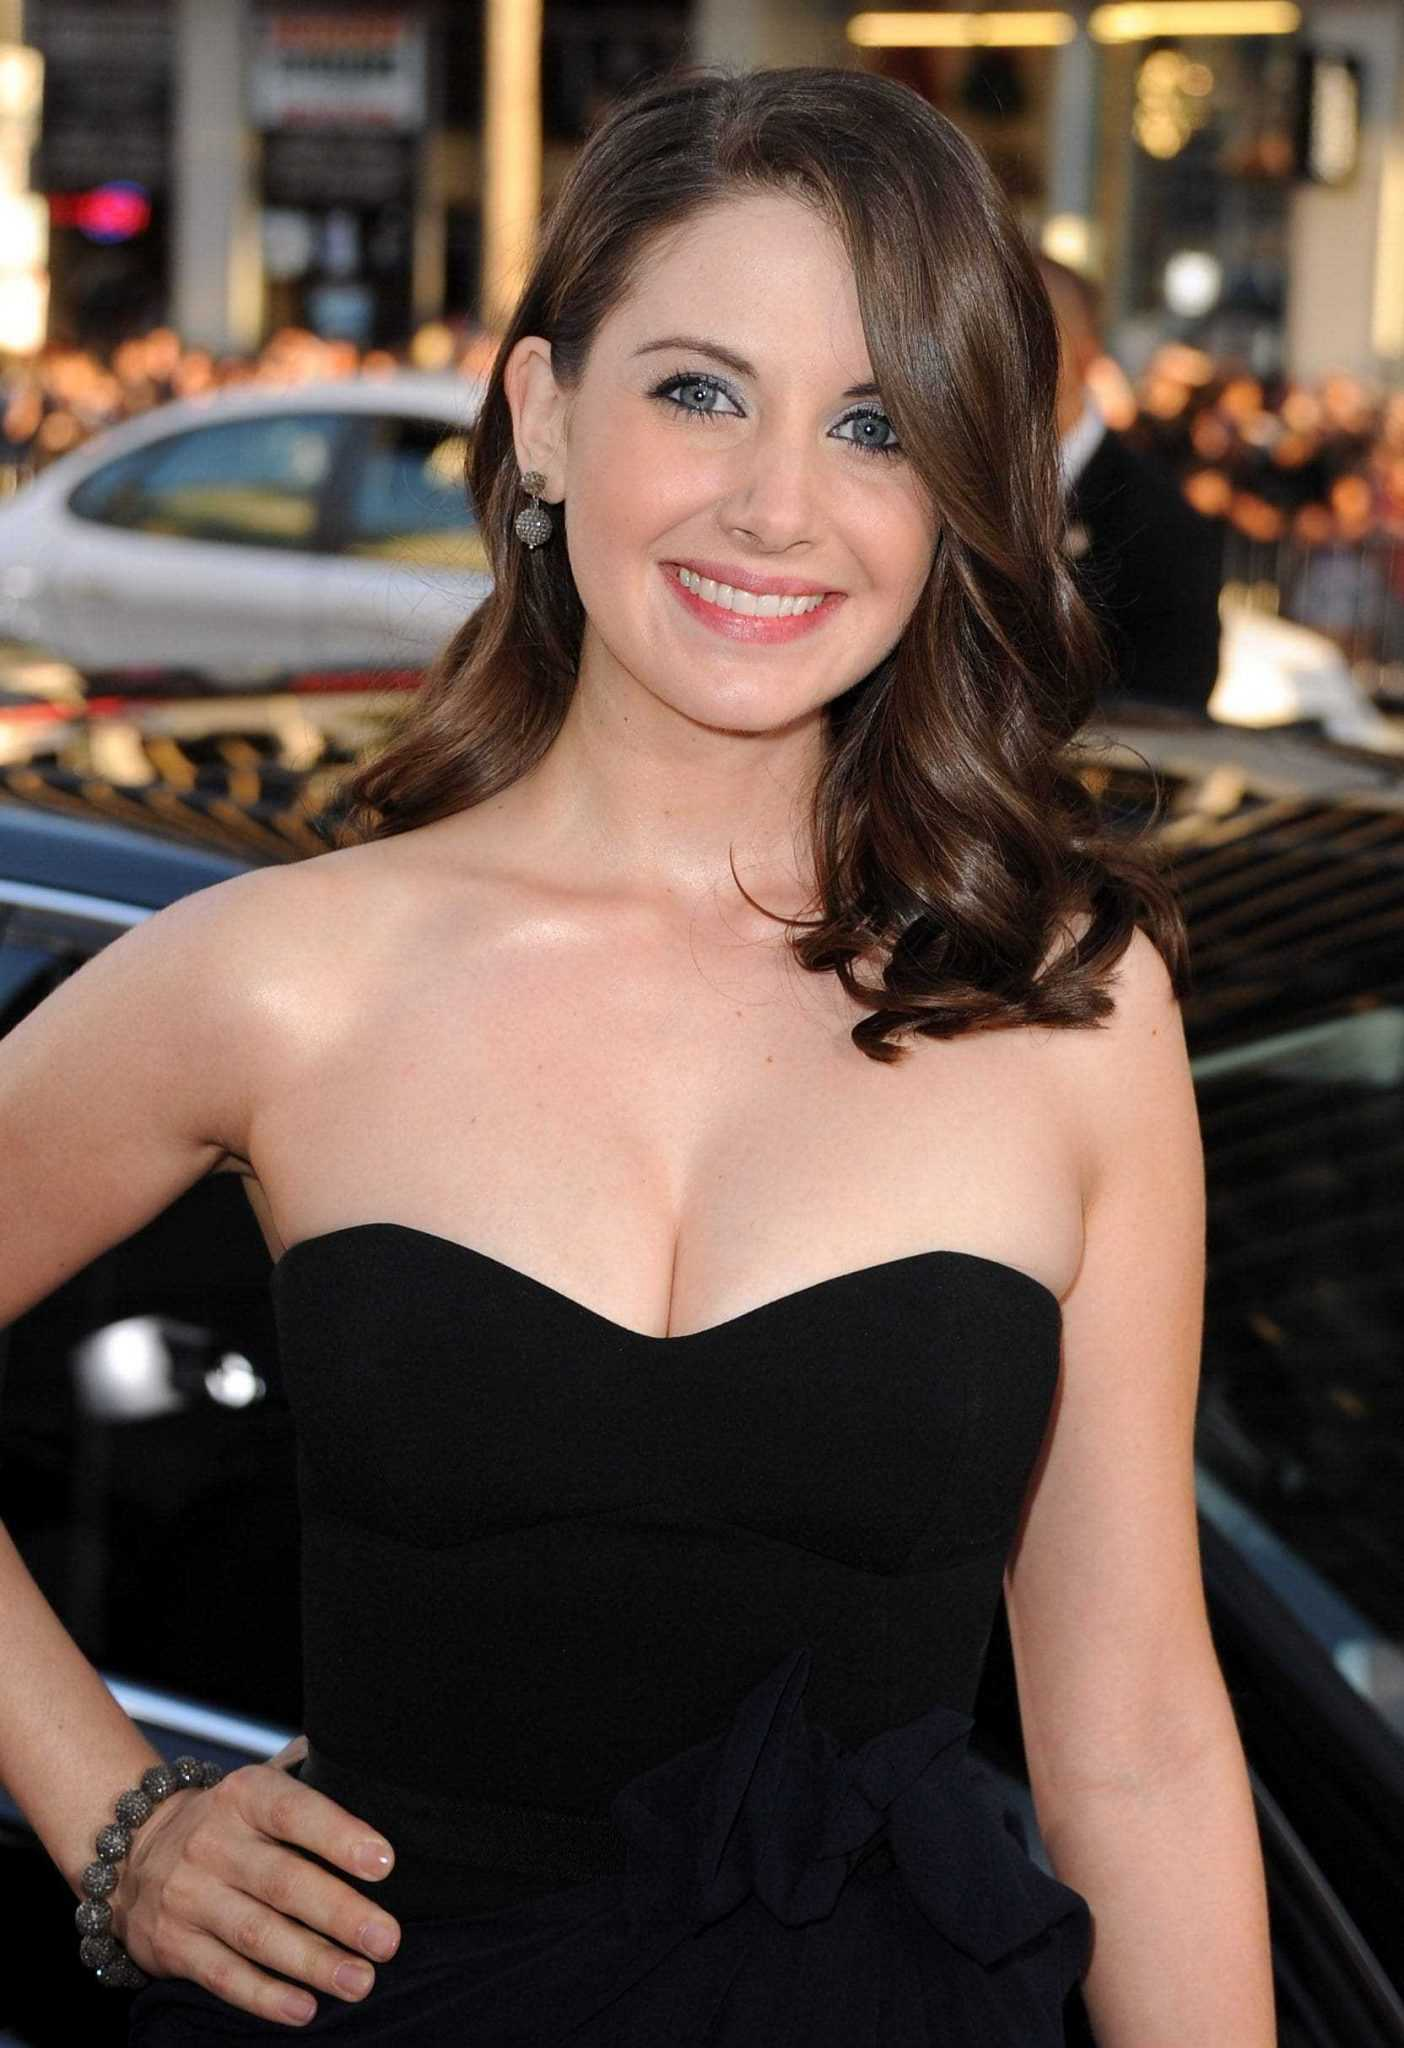 Alison Brie busty pics